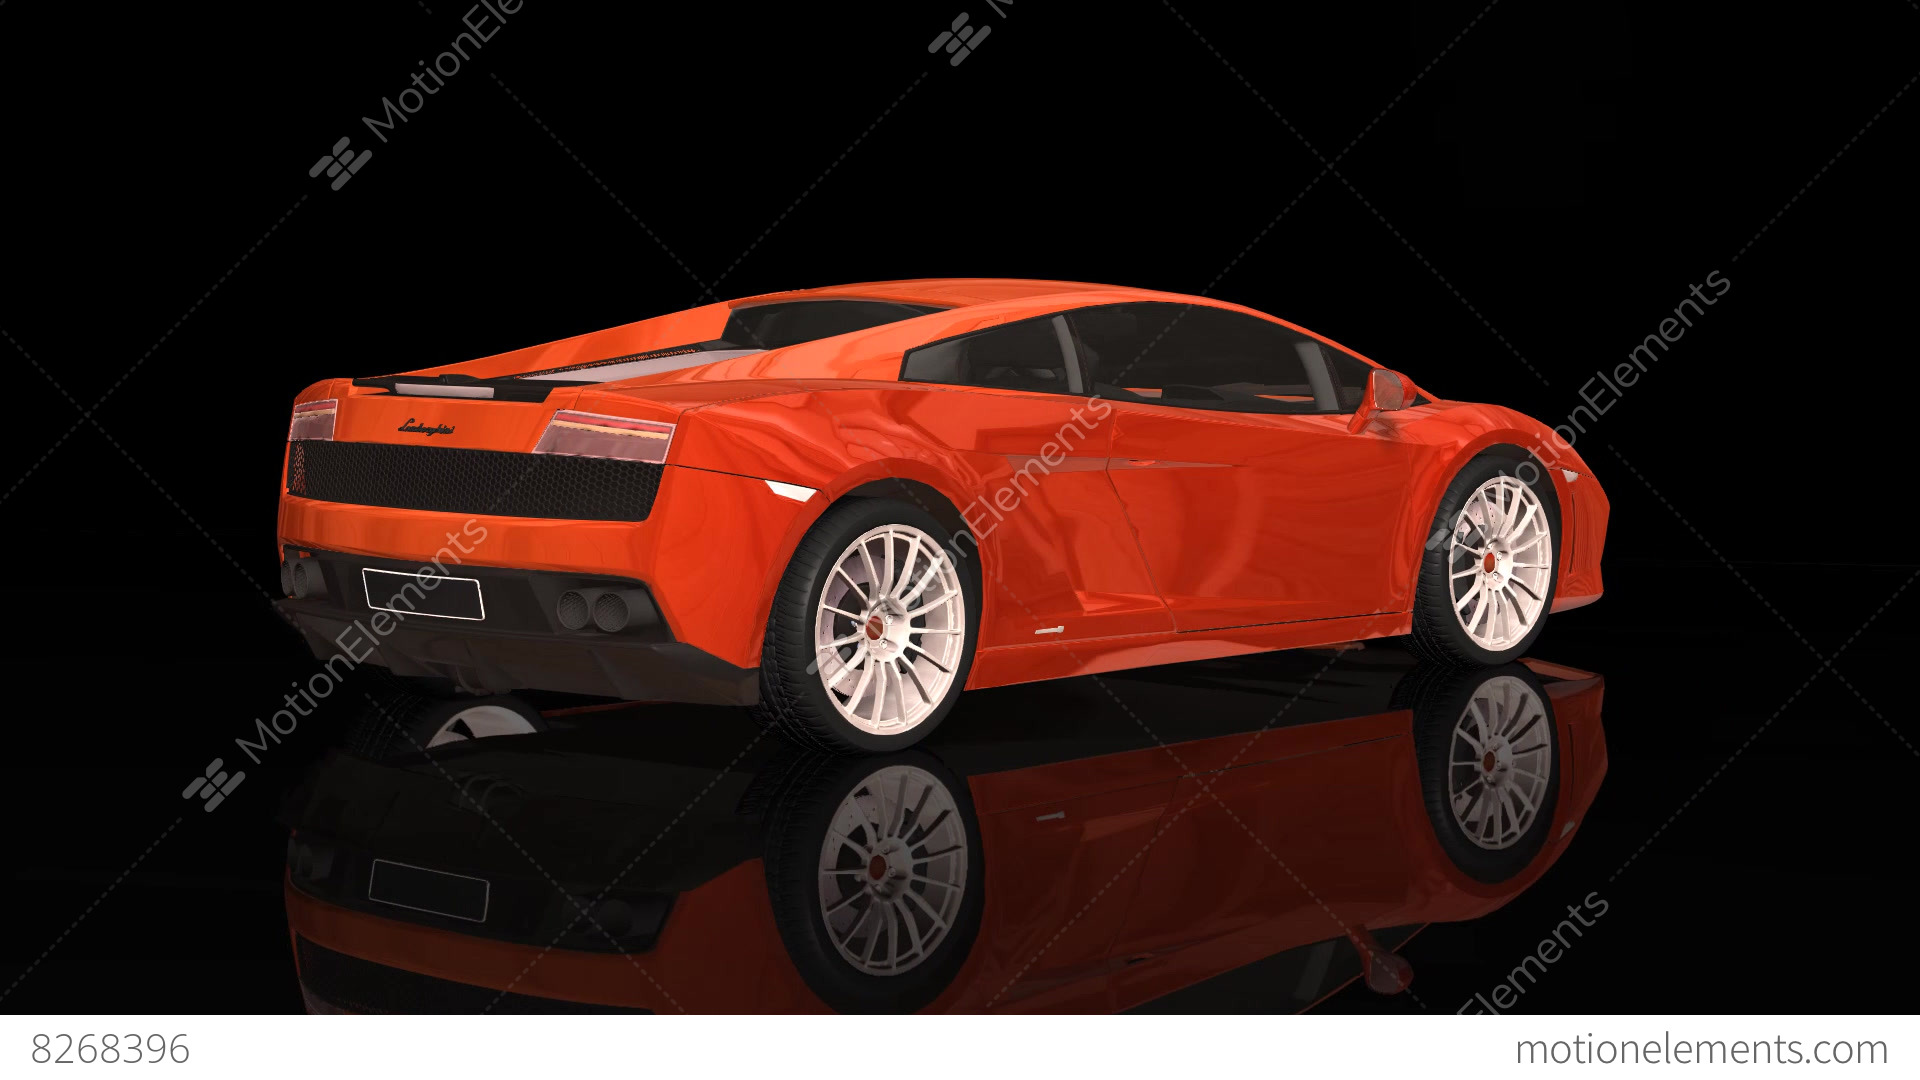 Luxury Sport Car Lamborghini Orange Color Moving Rotation Stock